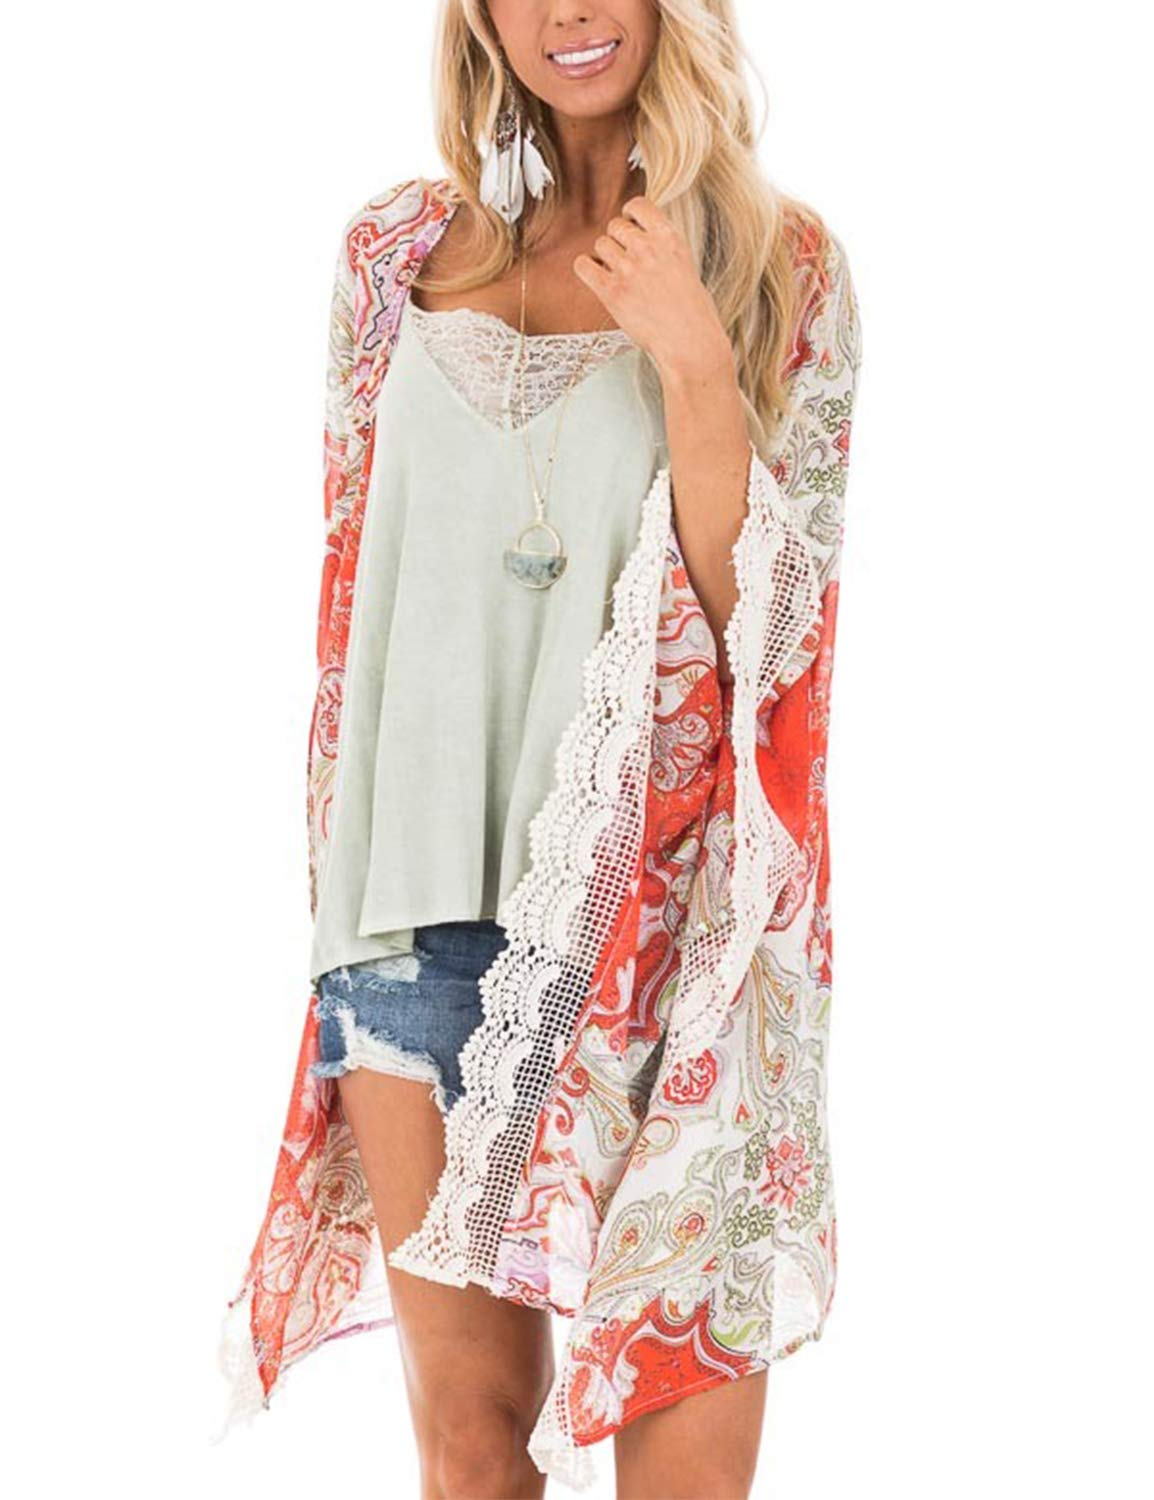 Women's Open Front Top Chiffon Floral Kimono Oversized Split Short Cover Ups